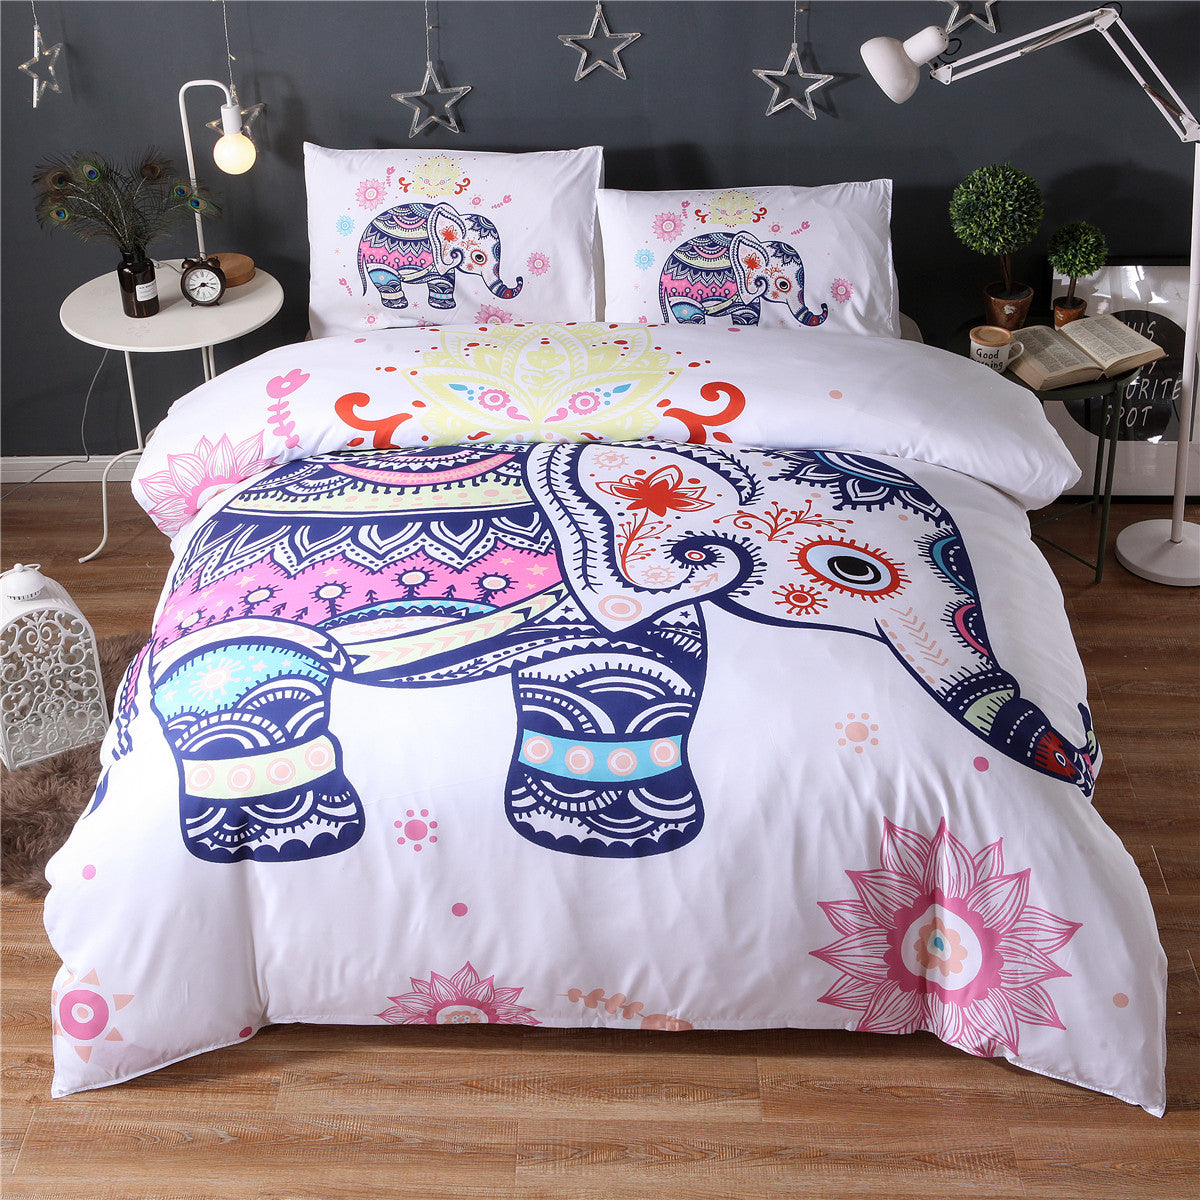 Elephant Bedding Set - 50% Off + FREE Shipping - The Creative Booth